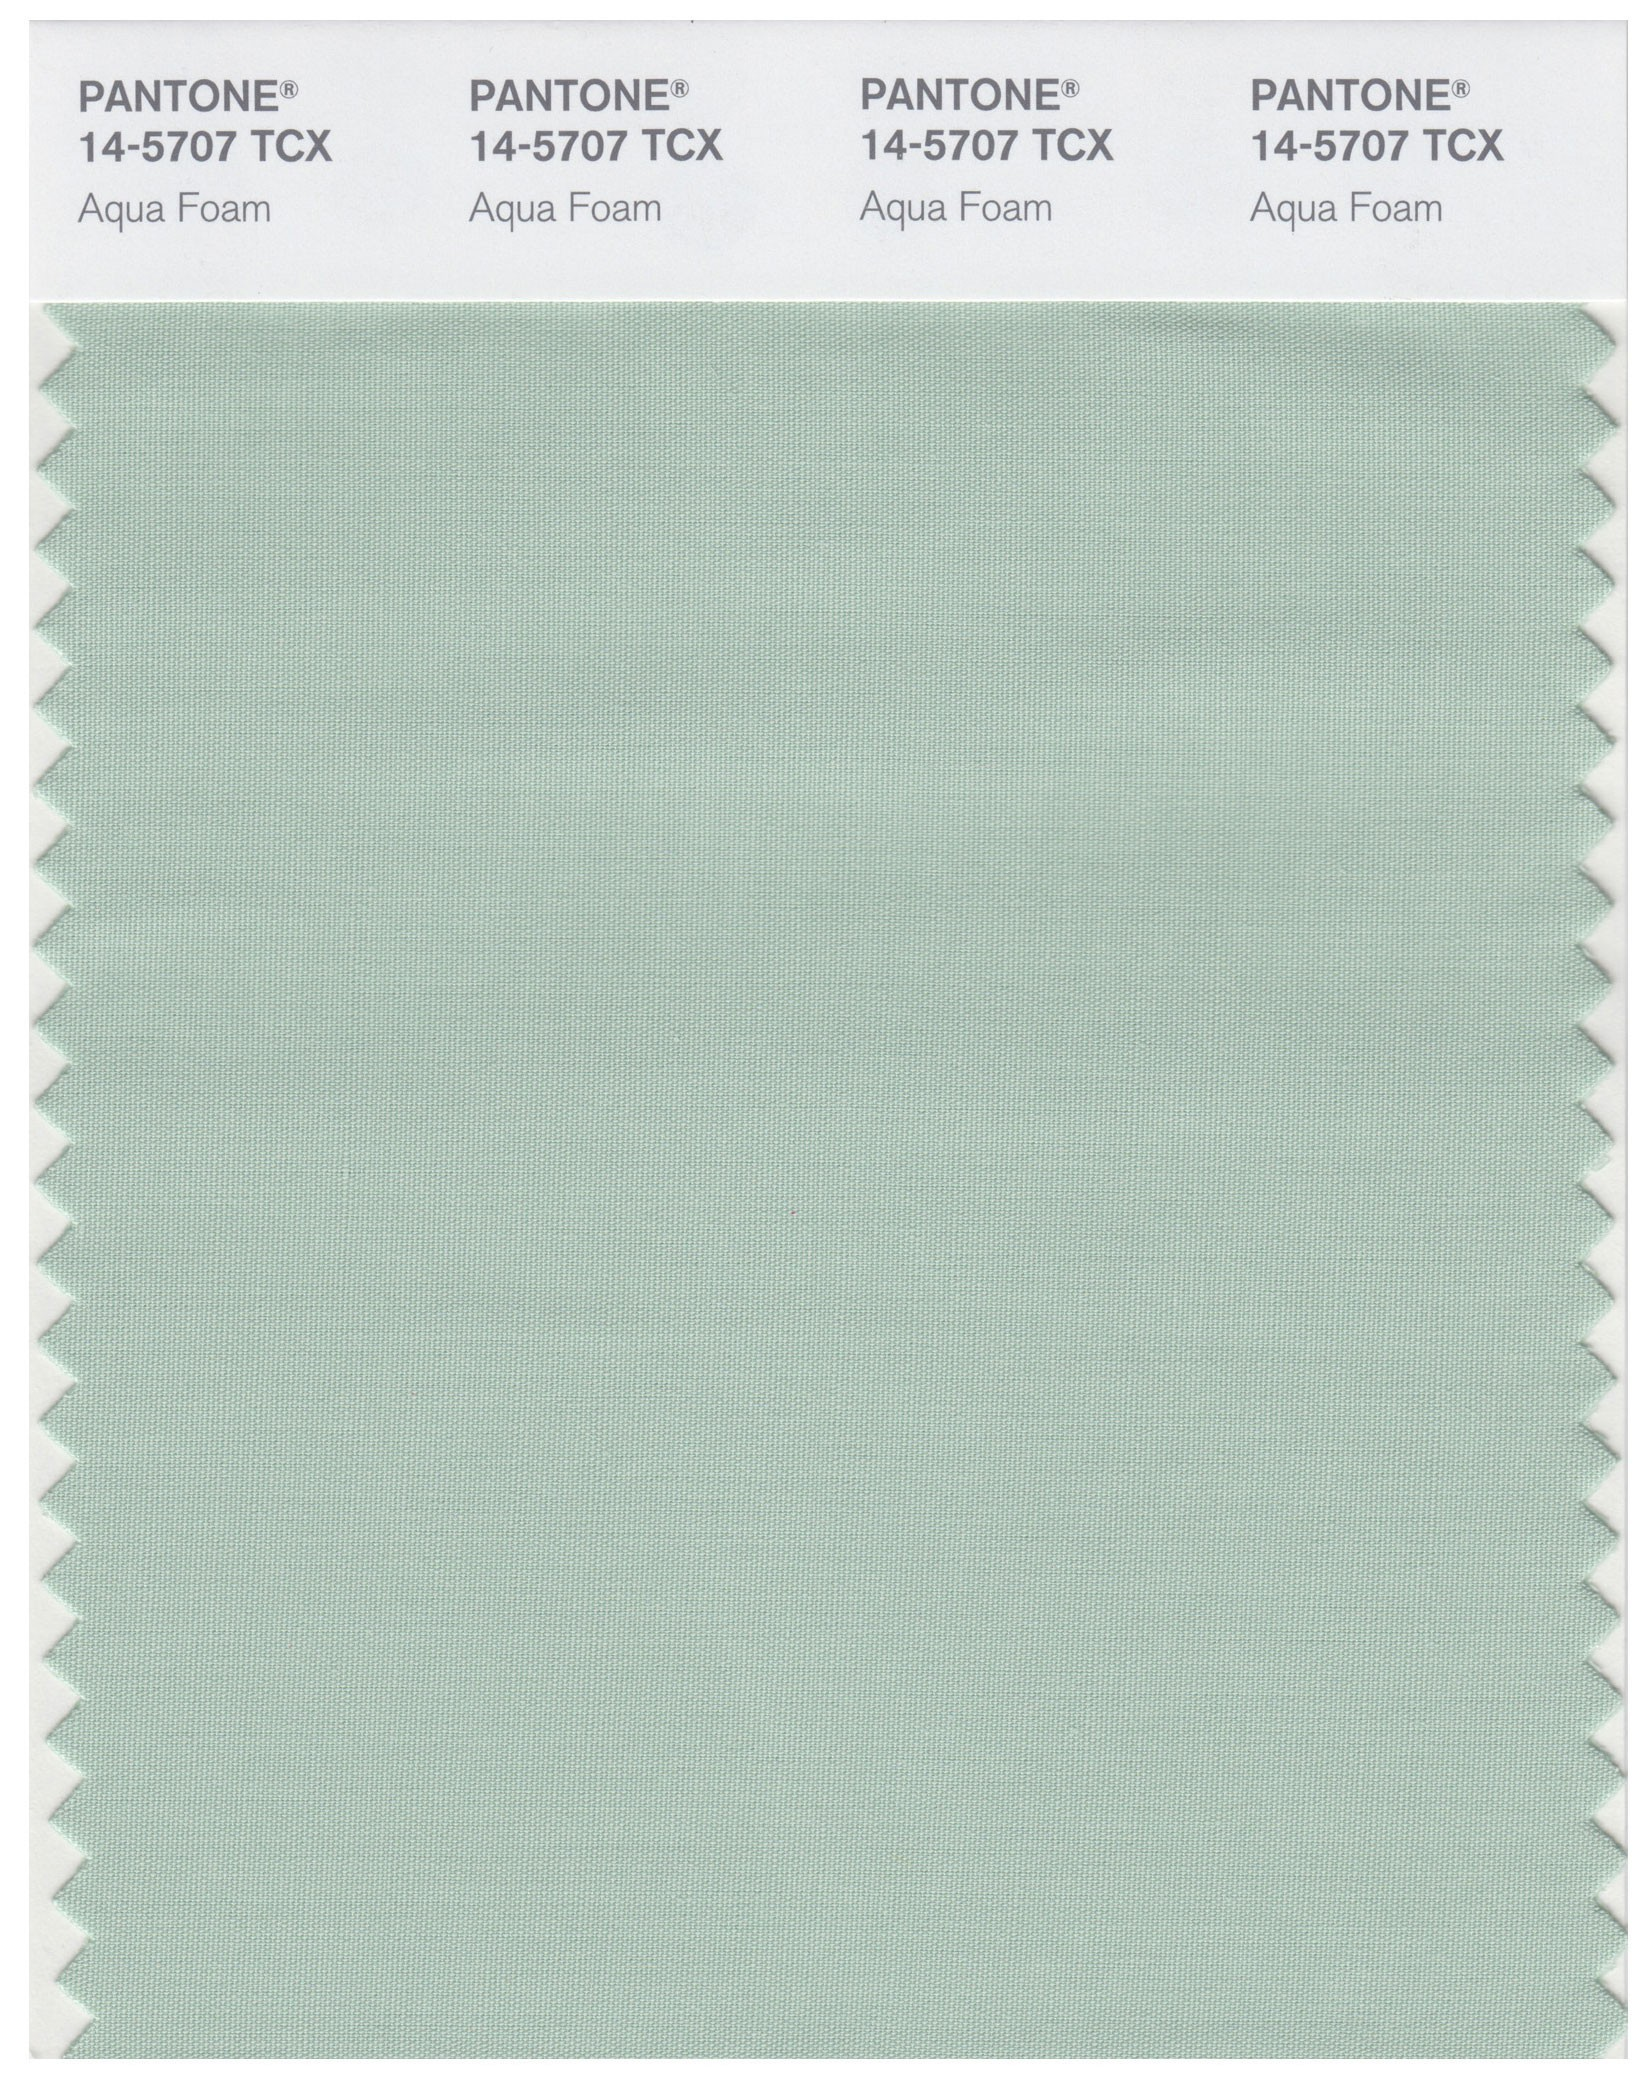 Pantone 14-5707 TCX Swatch Card Aqua Foam